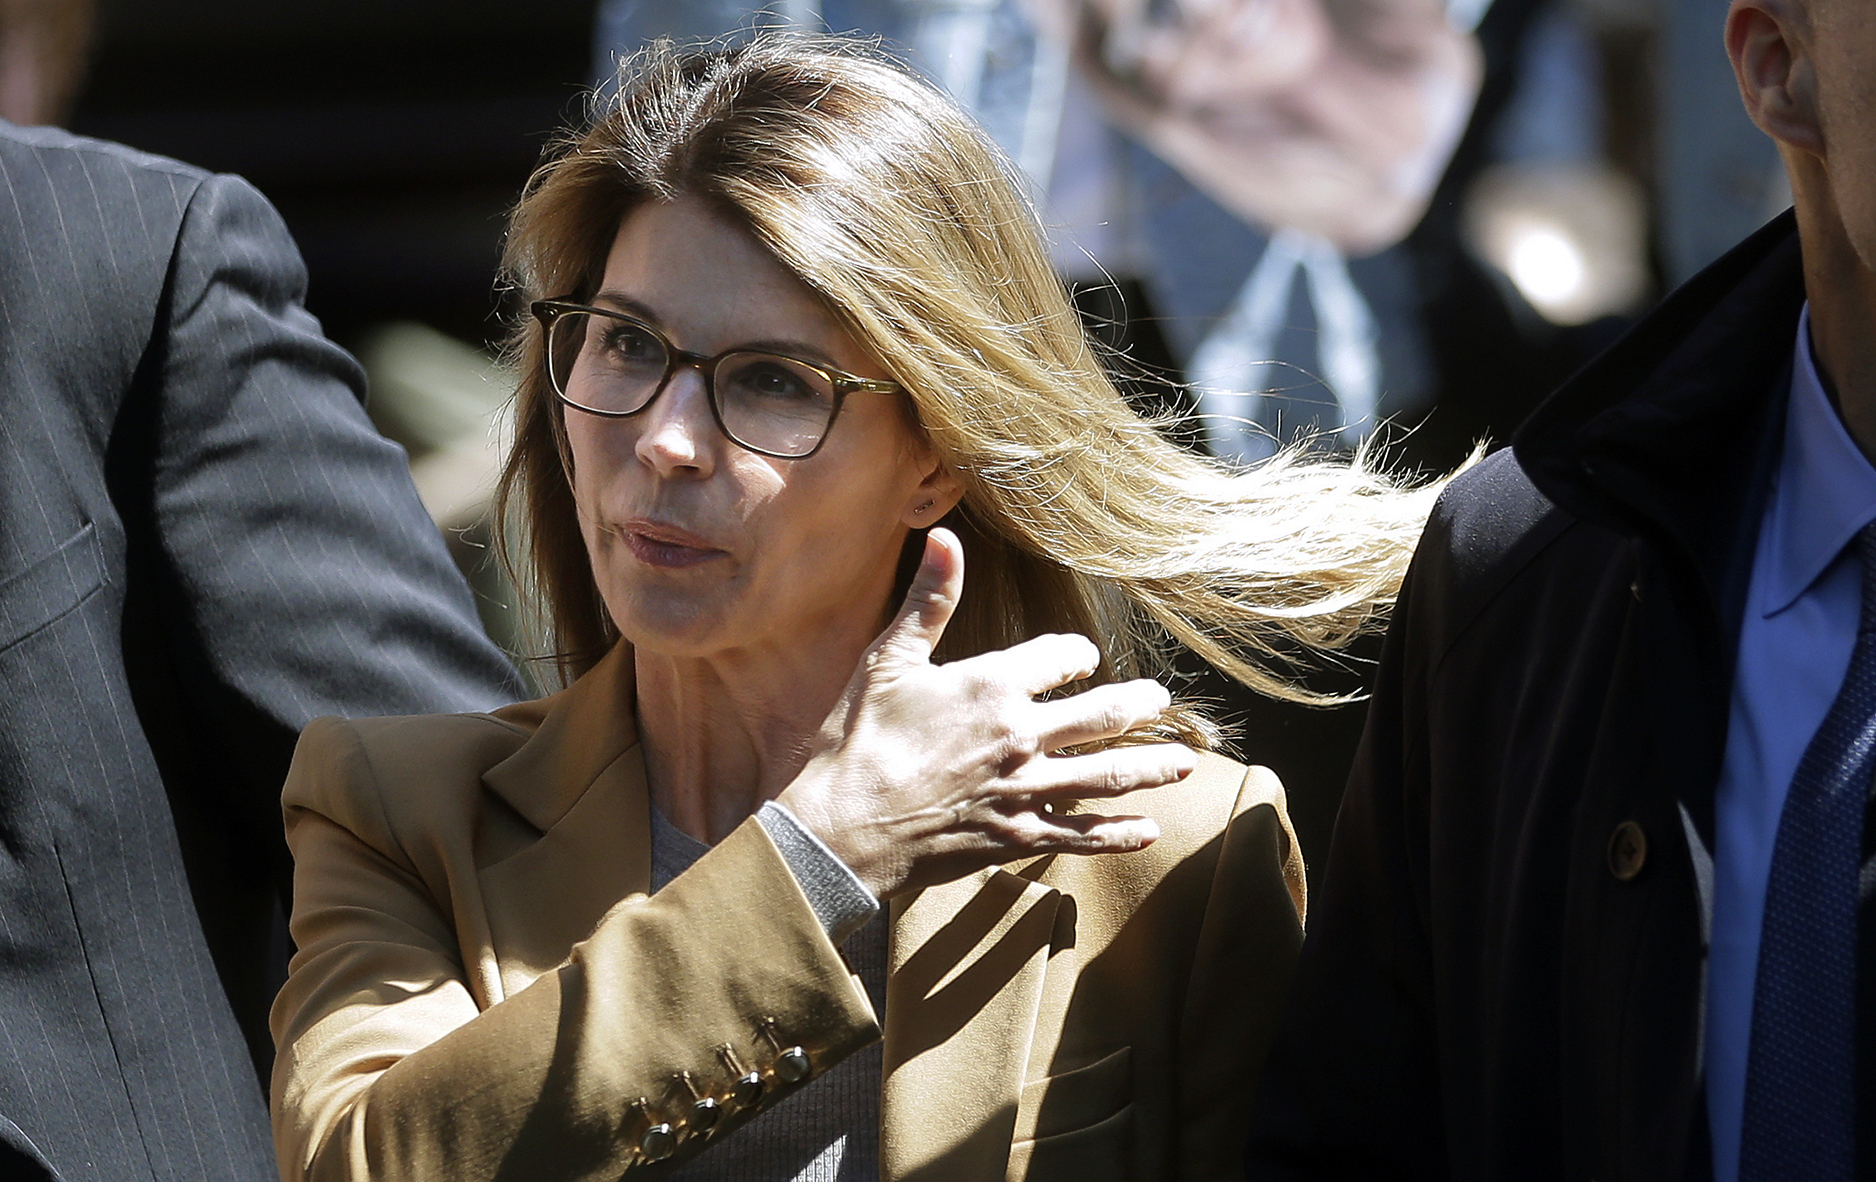 Westlake Legal Group 10_AP19093657677390 Lori Loughlin felt 'manipulated' in college admissions scandal, didn't think she broke laws: report Jessica Sager fox-news/topic/college-admissions-scandal fox-news/person/lori-loughlin fox-news/entertainment/genres/crime fox-news/entertainment/events/scandal fox-news/entertainment/events/in-court fox-news/entertainment/celebrity-news fox-news/entertainment fox news fnc/entertainment fnc dd29dae1-86df-57f7-a4d3-436e524e044f article